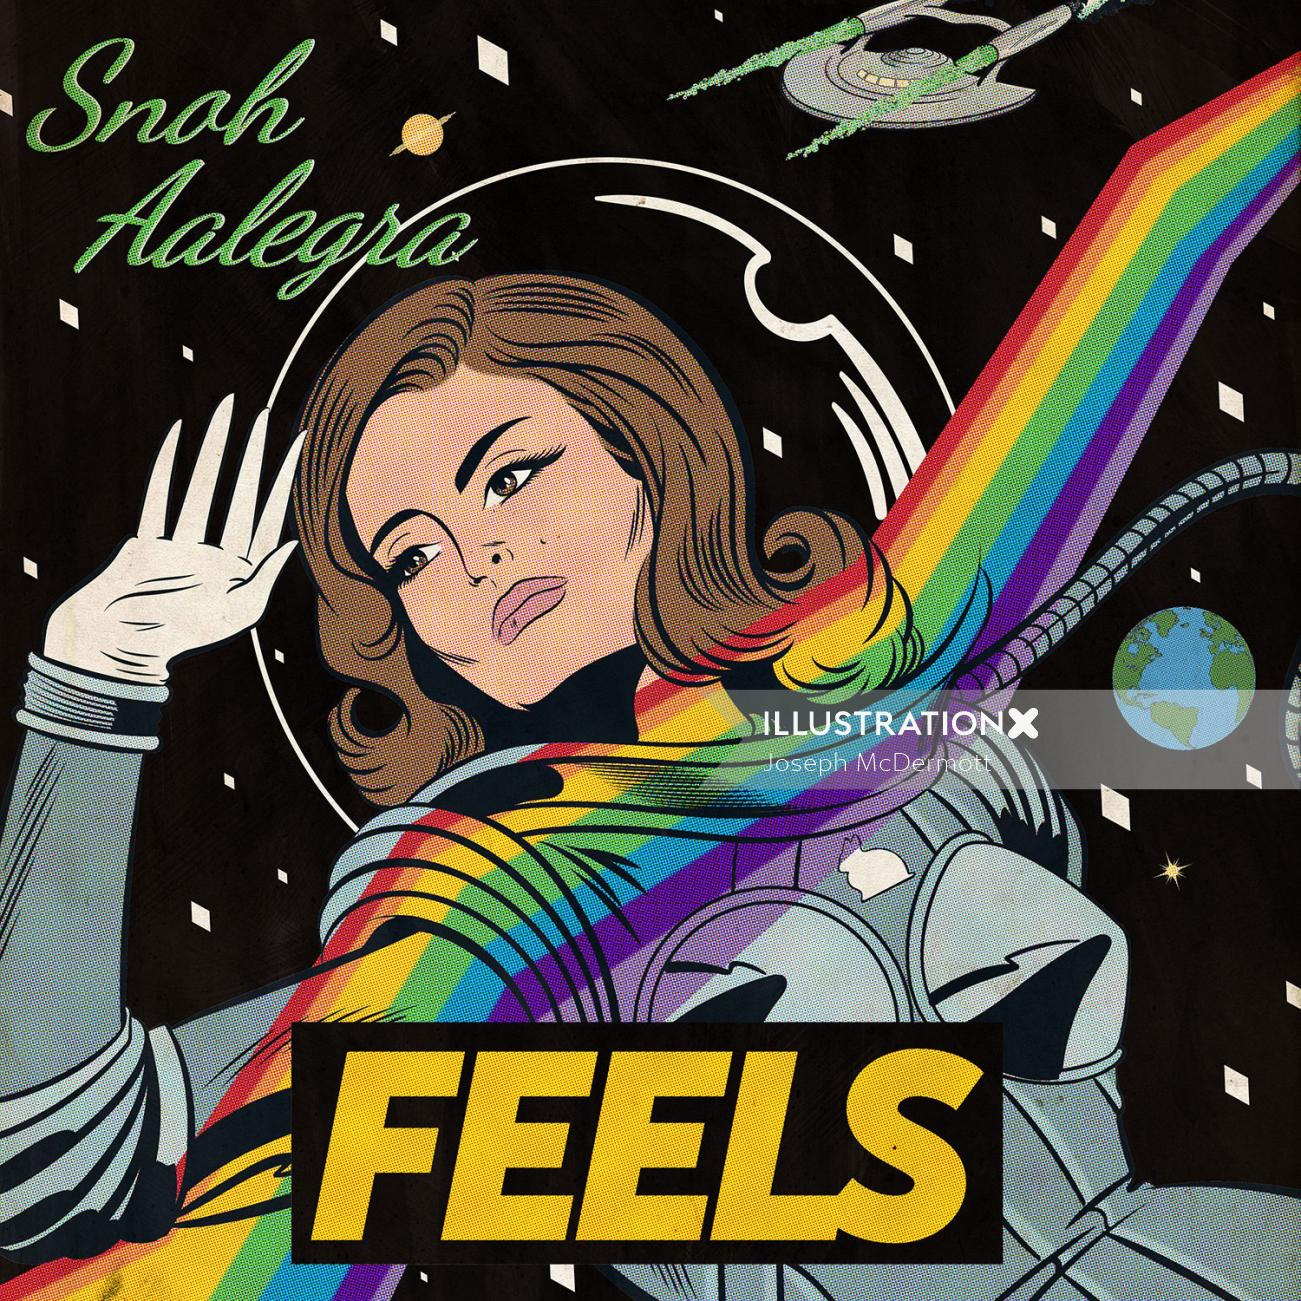 snoh aalegra - feels album cover